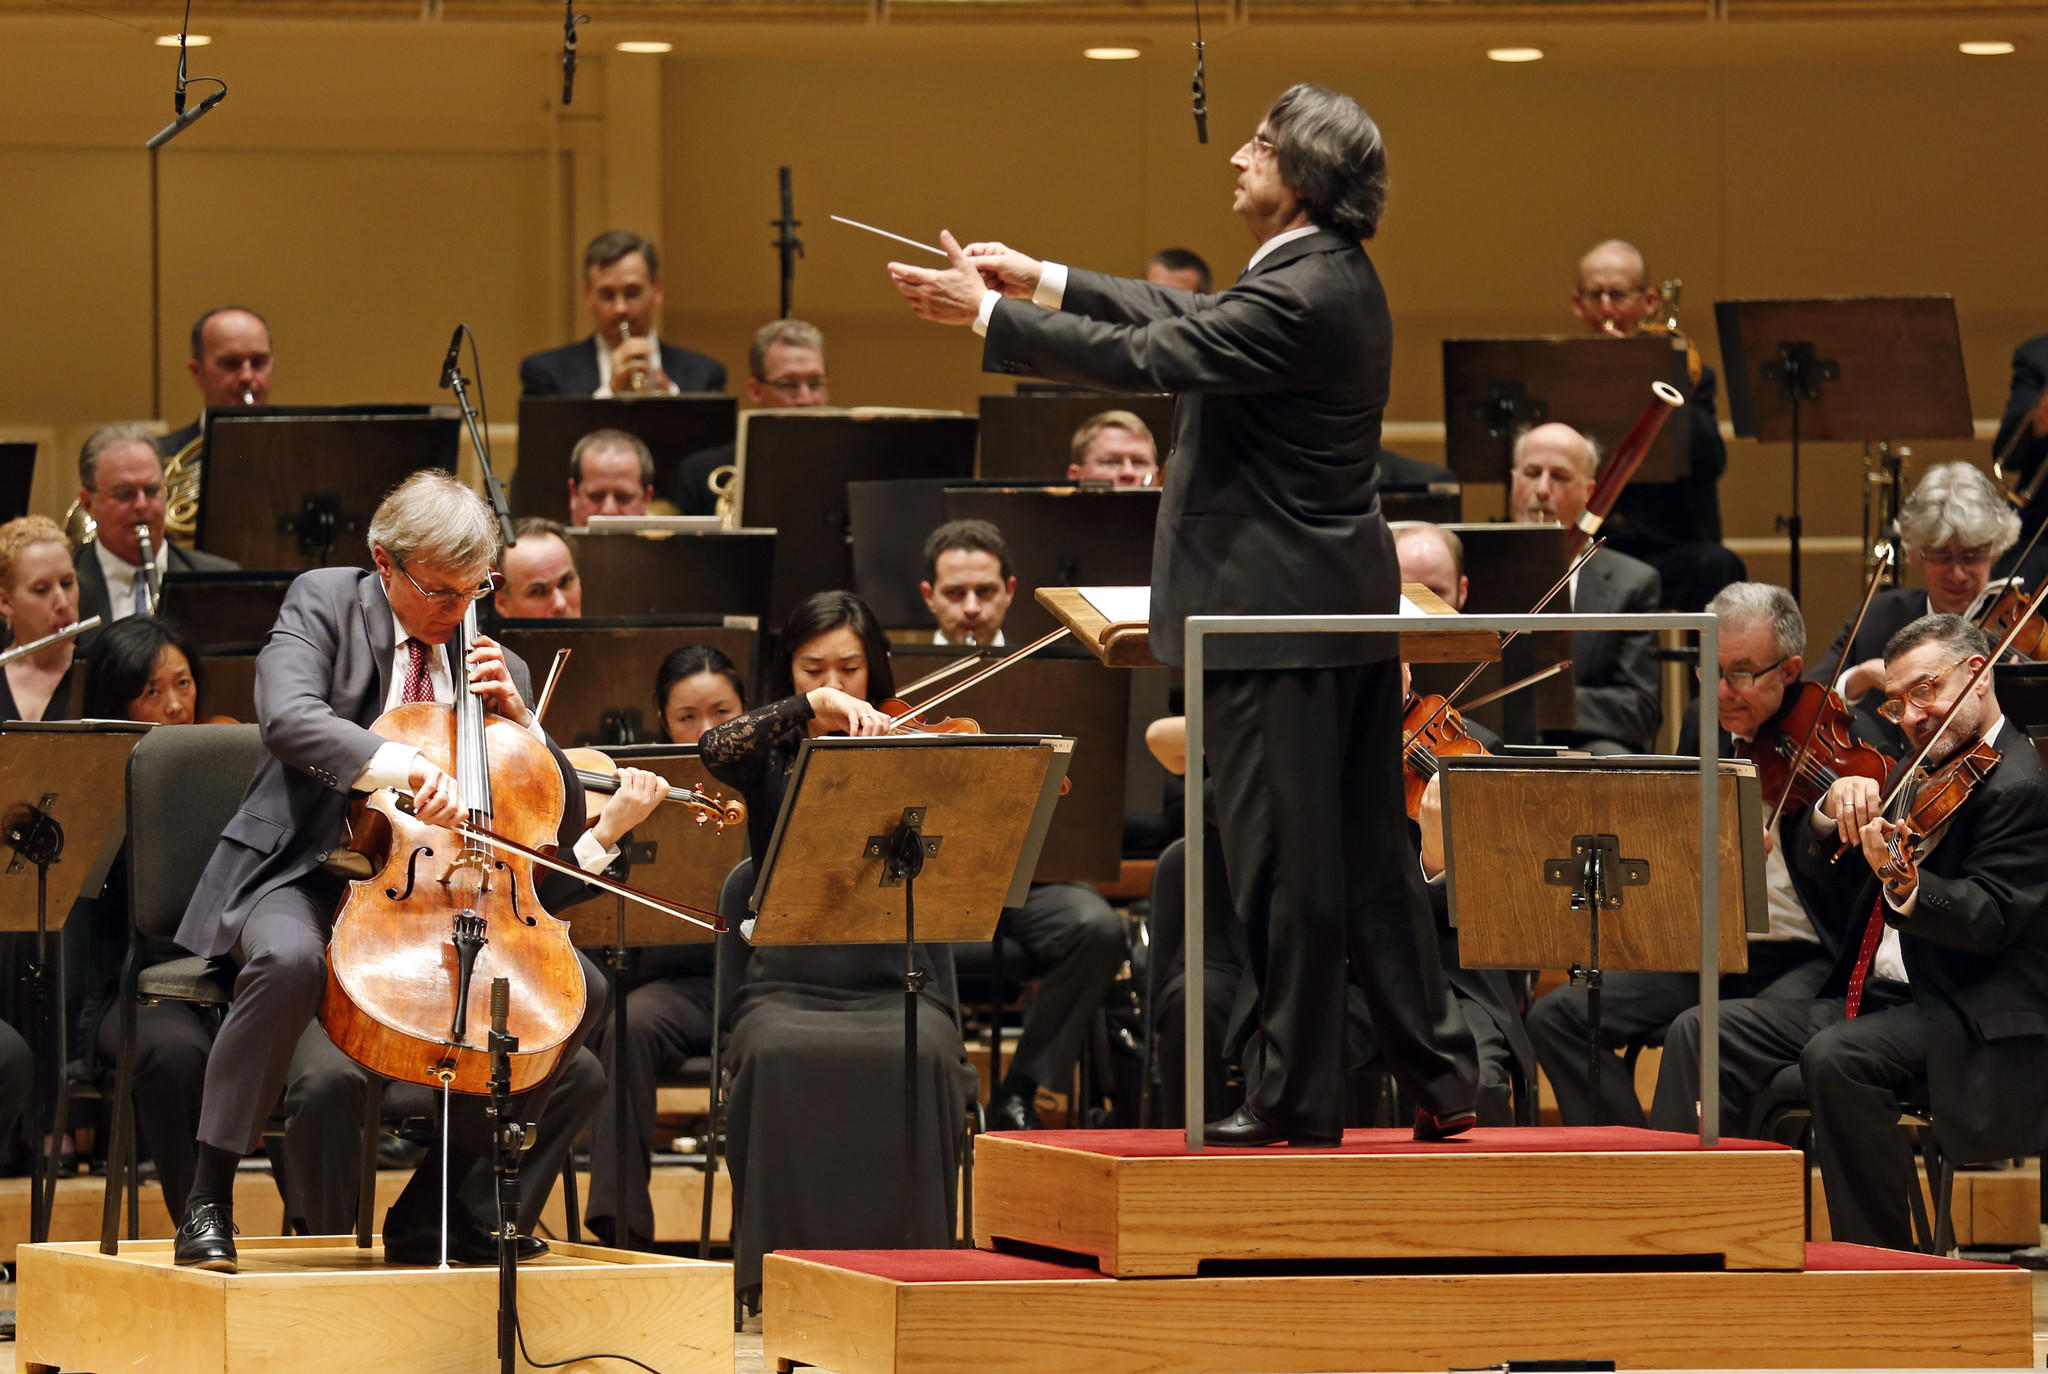 Riccardo Muti and the Chicago Symphony Orchestra, performing with cellist John Sharp, at Symphony Center.